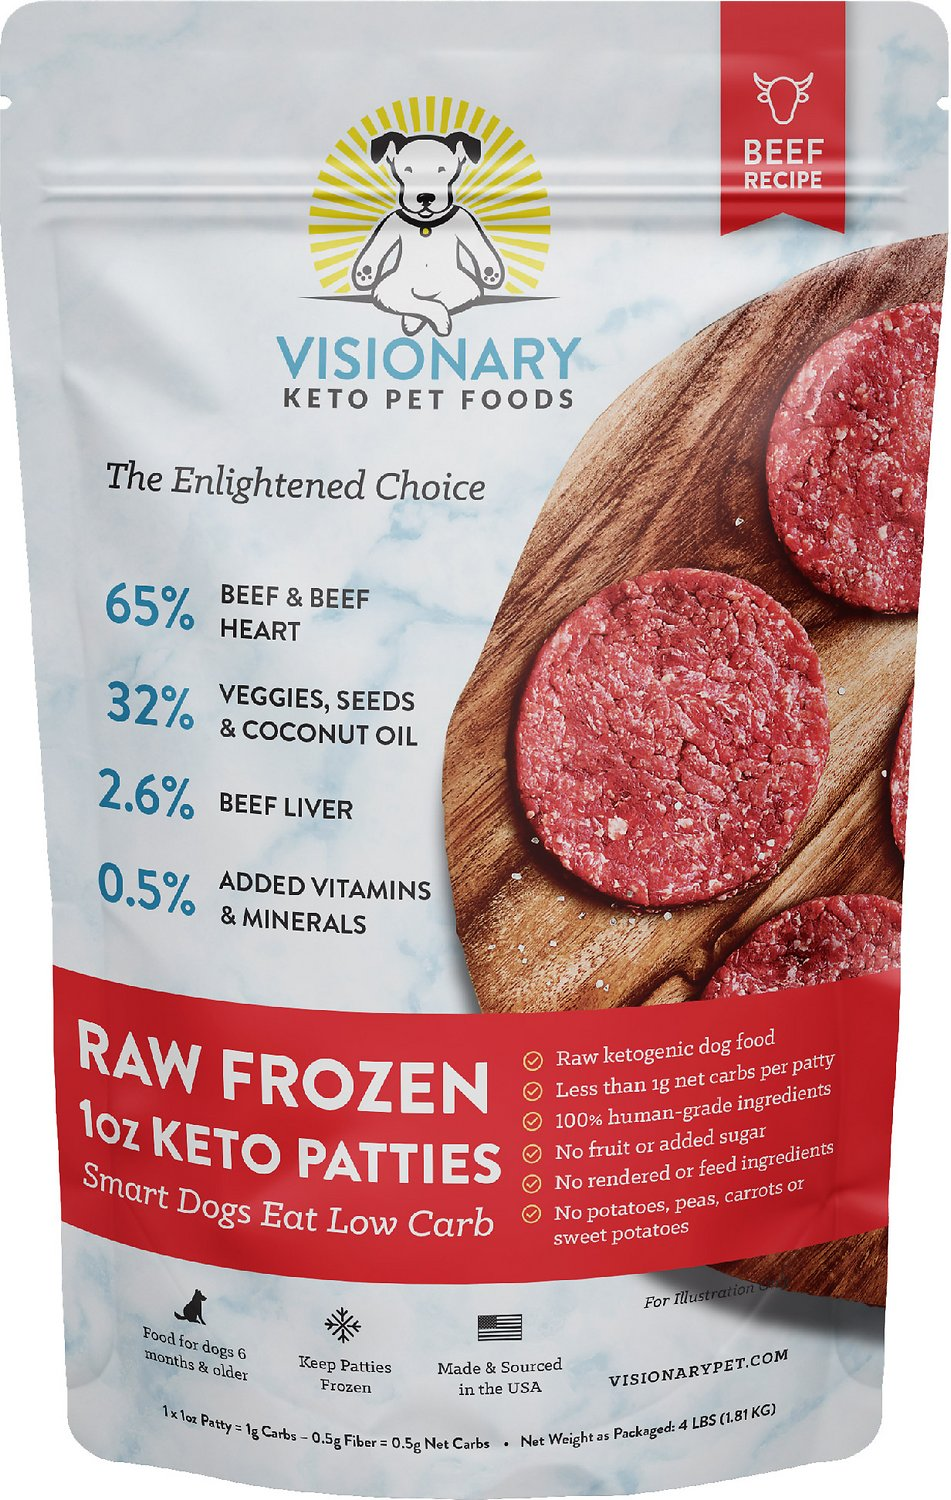 Visionary Pet Foods Raw Frozen Keto Beef Recipe Sliders Adult Dog Food 4 Lb Bag